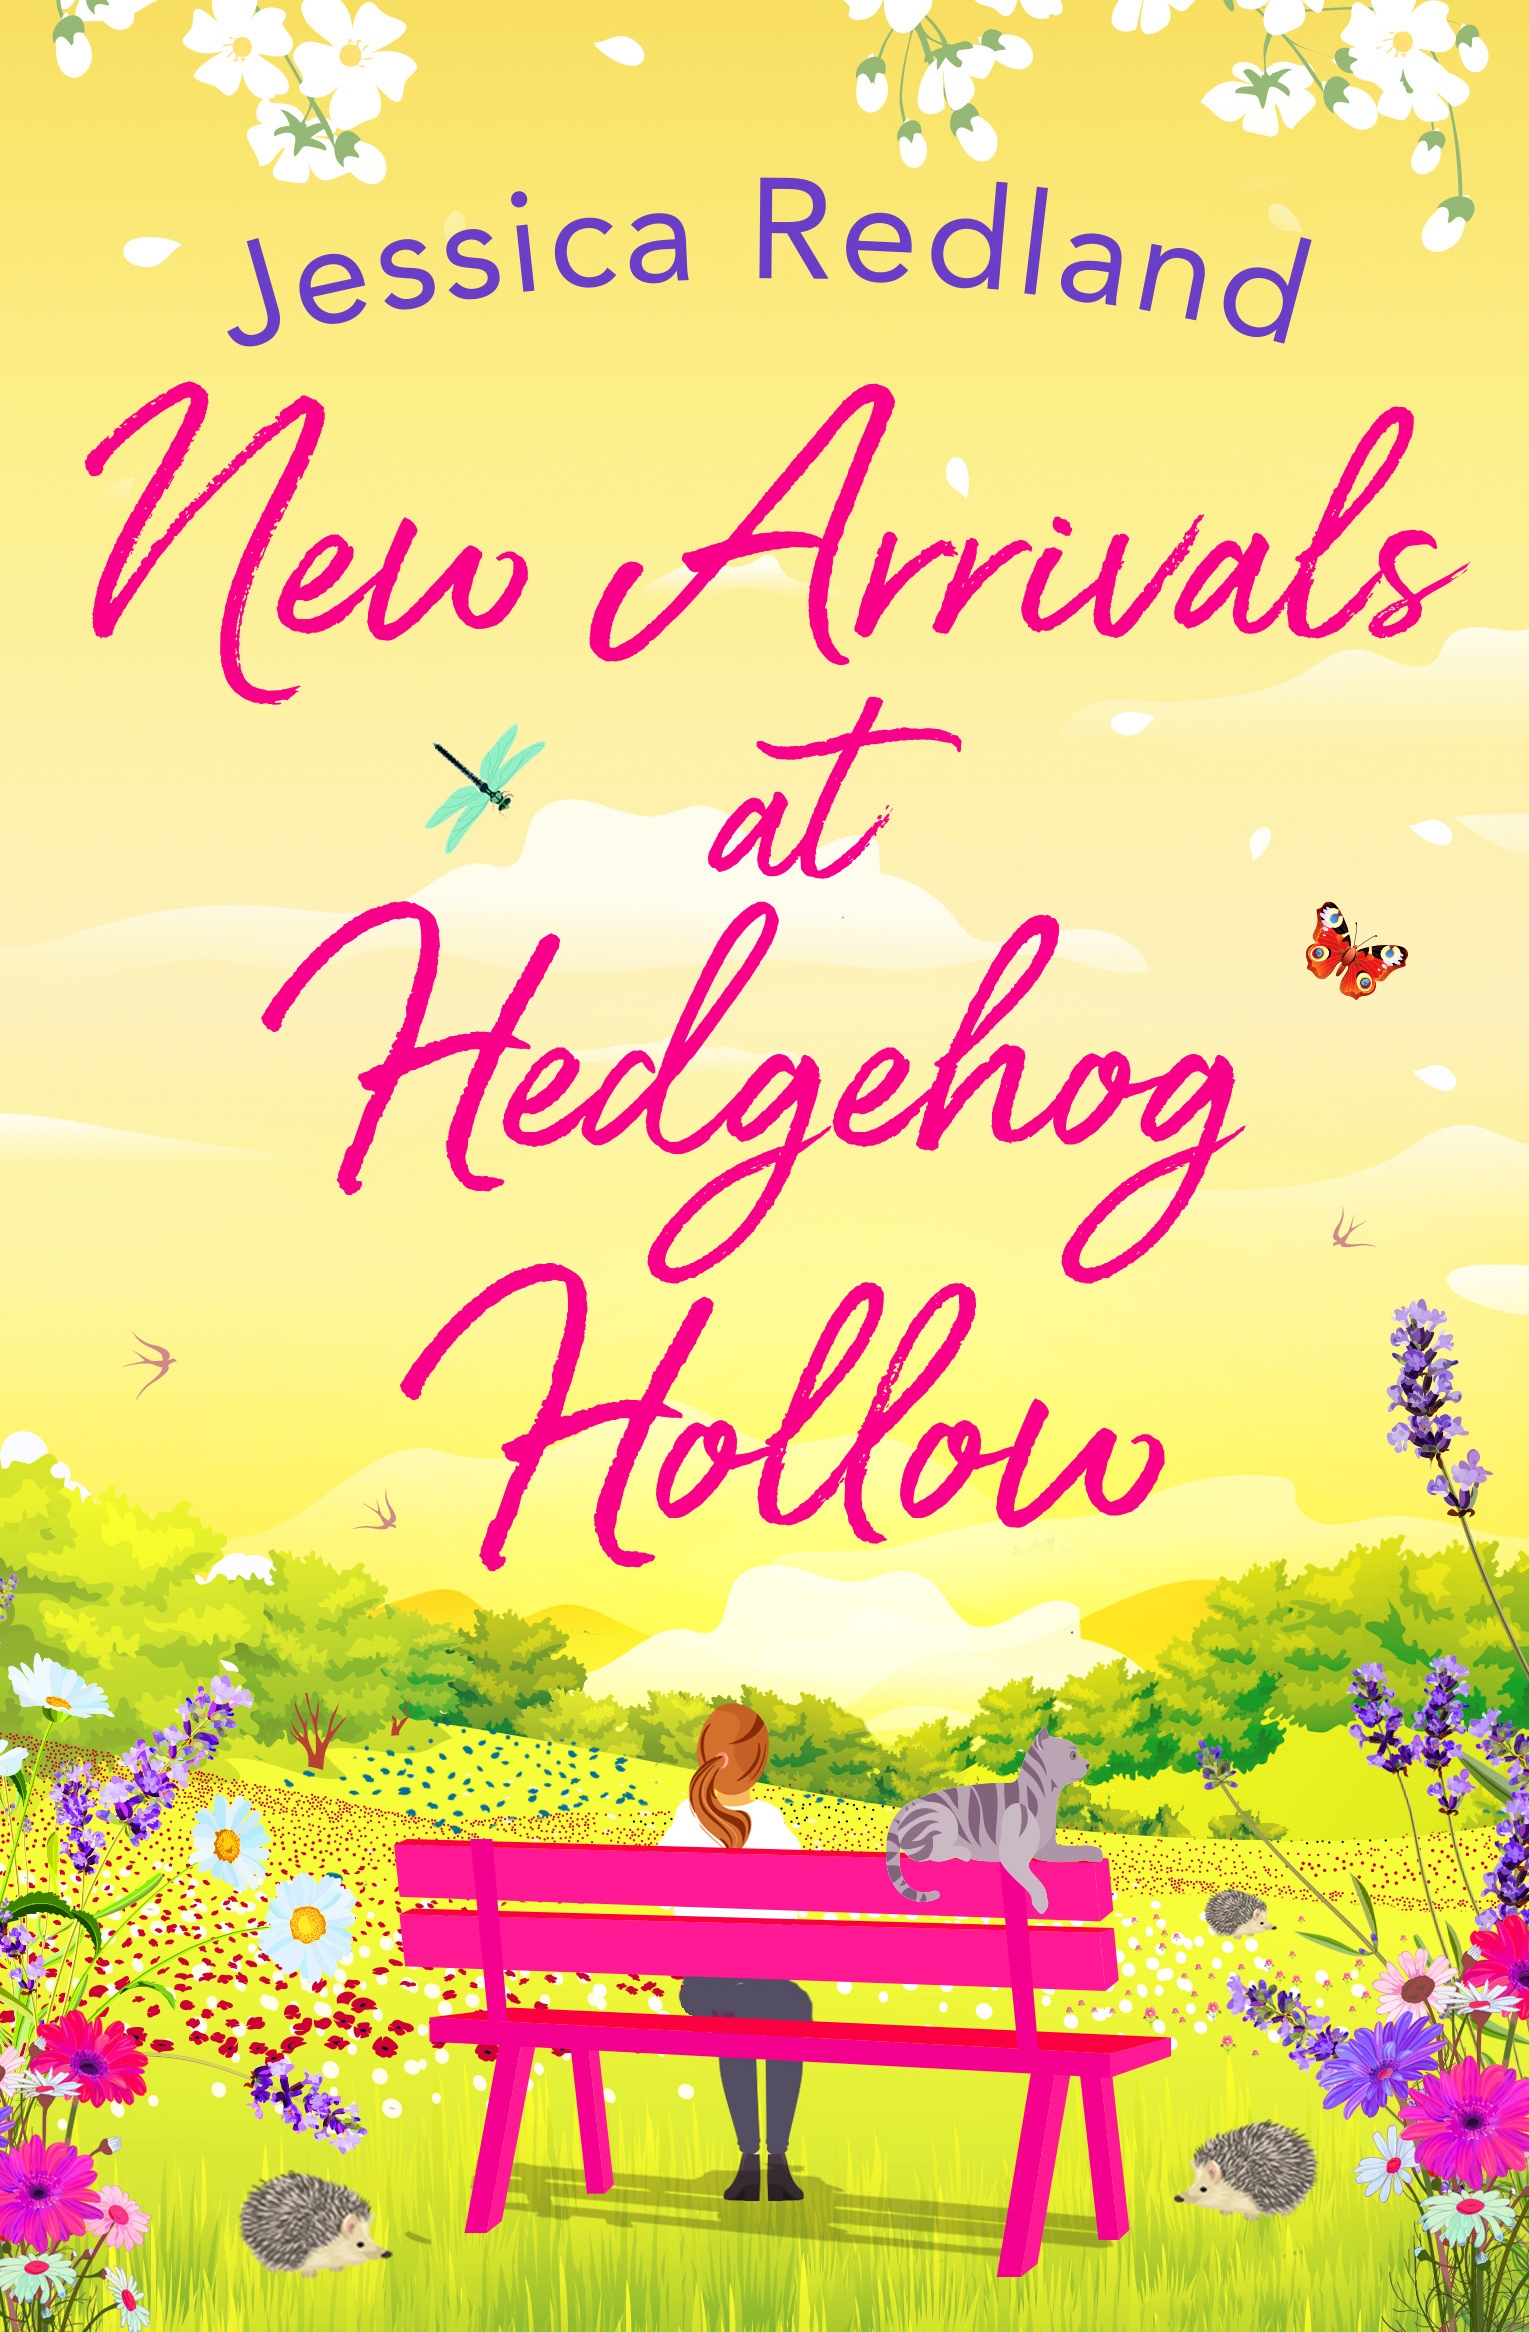 New Arrivals at Hedgehog Hollow